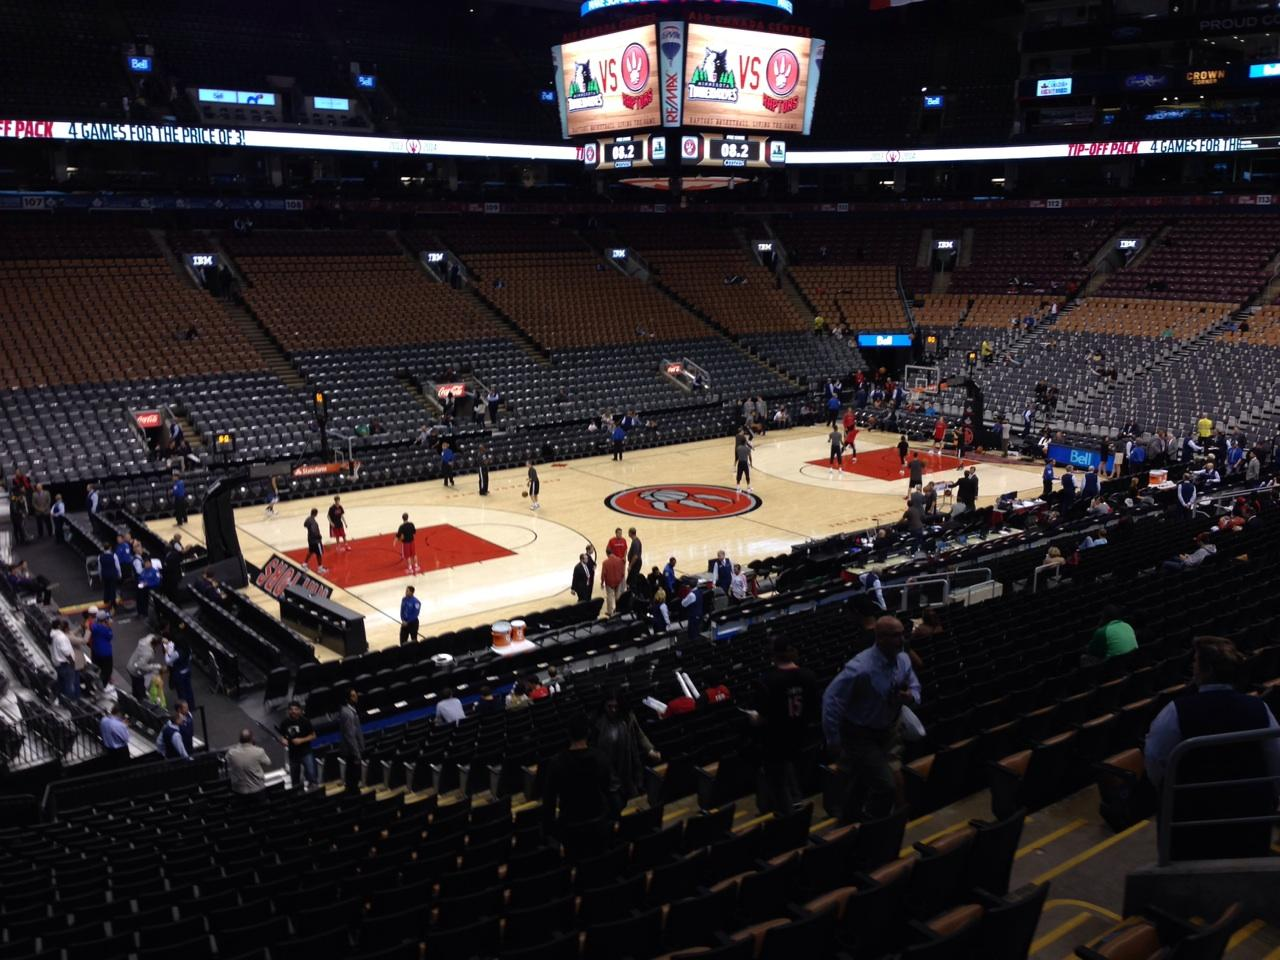 Toronto Raptors Seat View for Air Canada Centre Section 121, Row 25, Seat 9